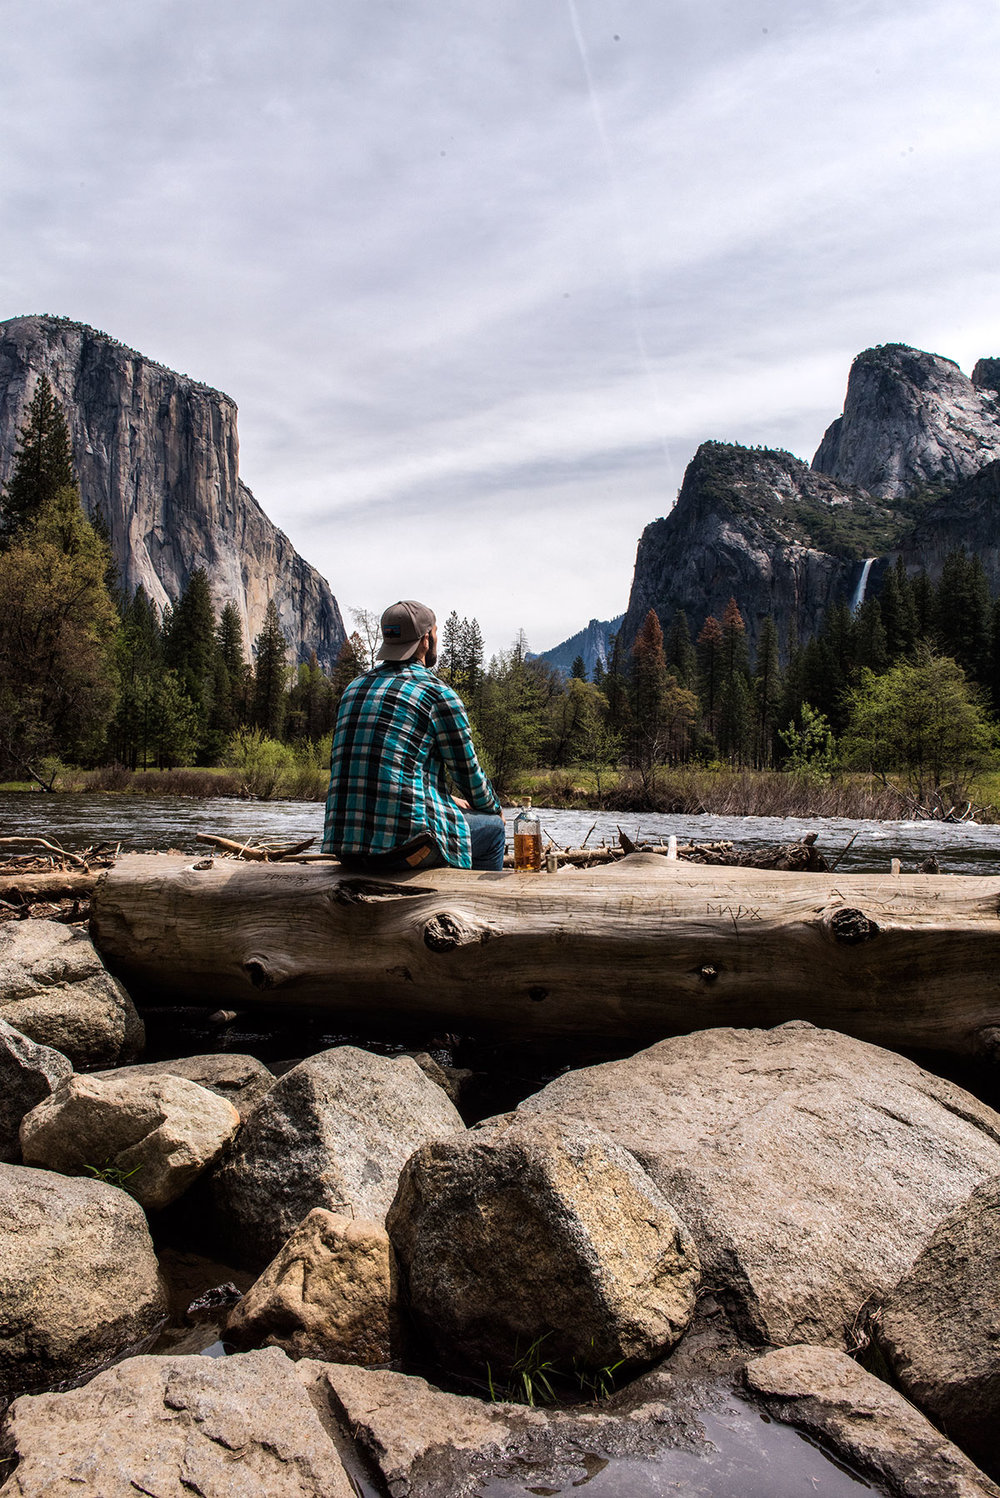 austin-trigg-whiskey-yosemite-product-TINCUP-Valley-View-Daytime-merced-river.jpg